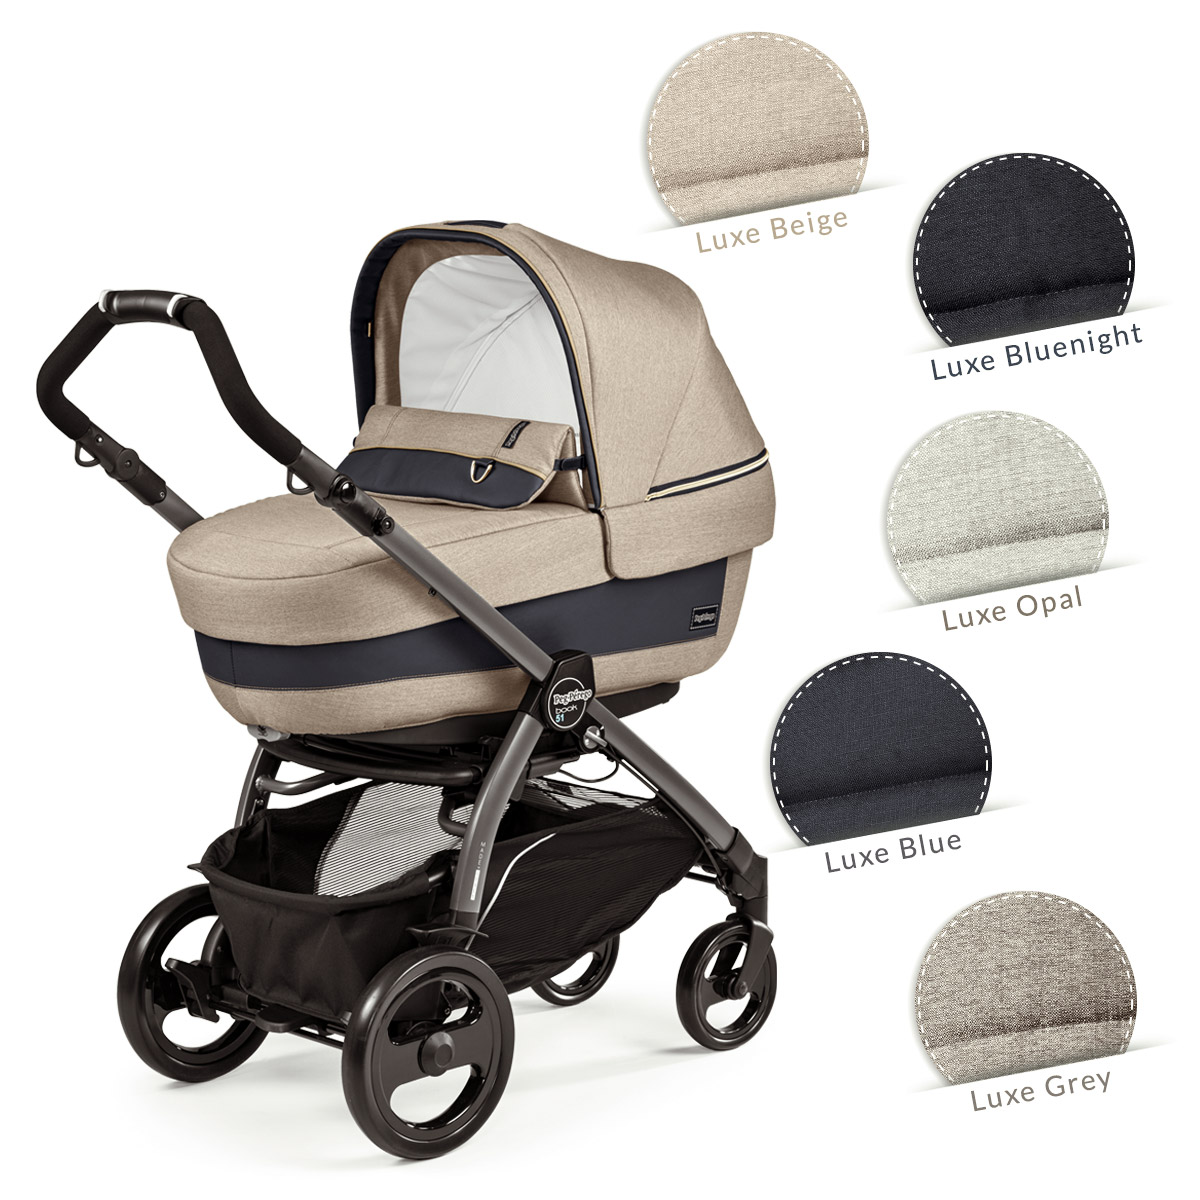 Expecting A Child In 2018 The New Look Of Modular Systems